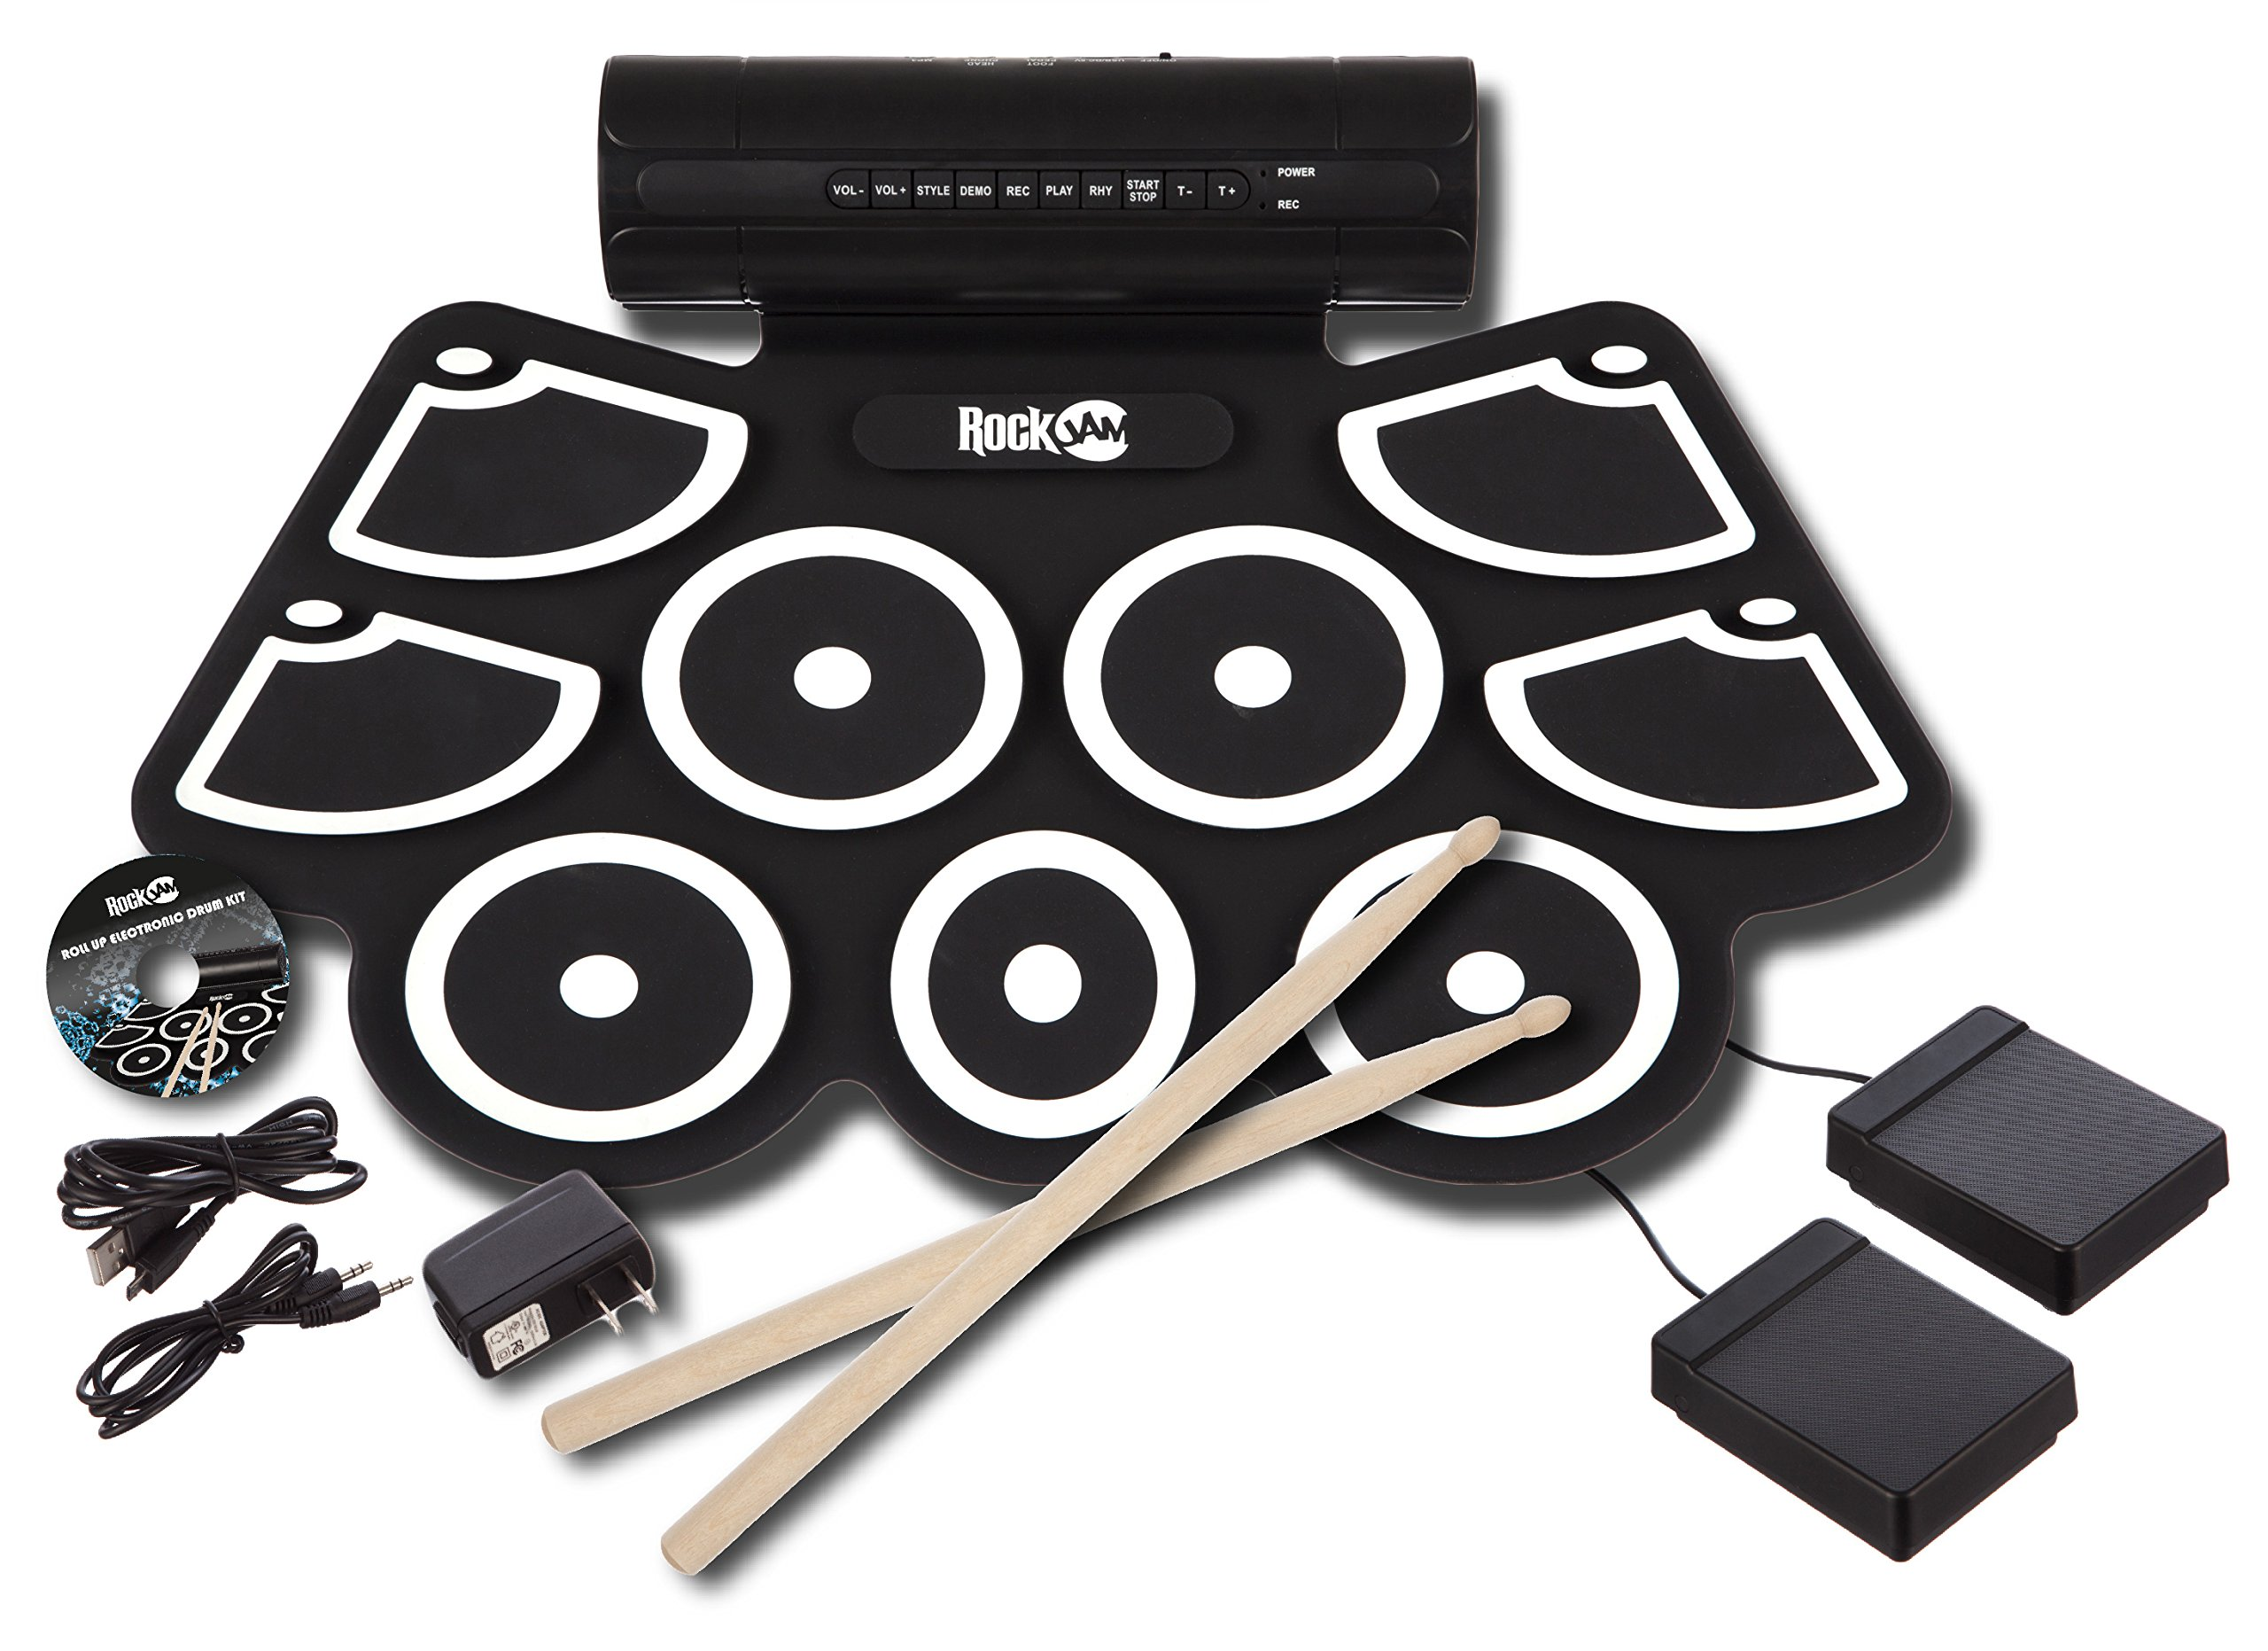 RockJam RJ760MD Electronic Roll Up MIDI Drum Kit with Built-in Speakers, Black product image